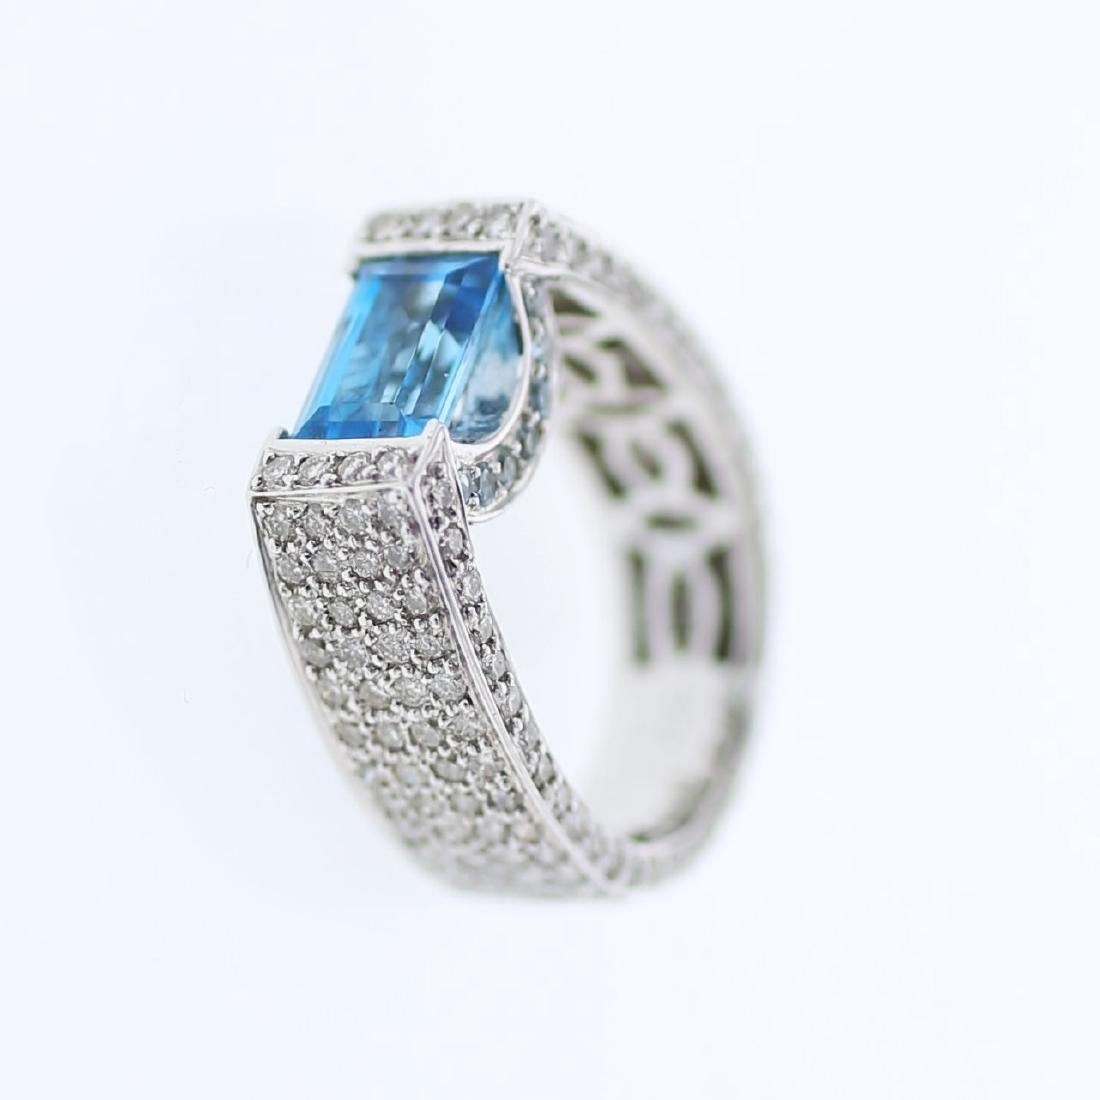 18KT White Gold Ladies Diamond and Gemstone Fashion